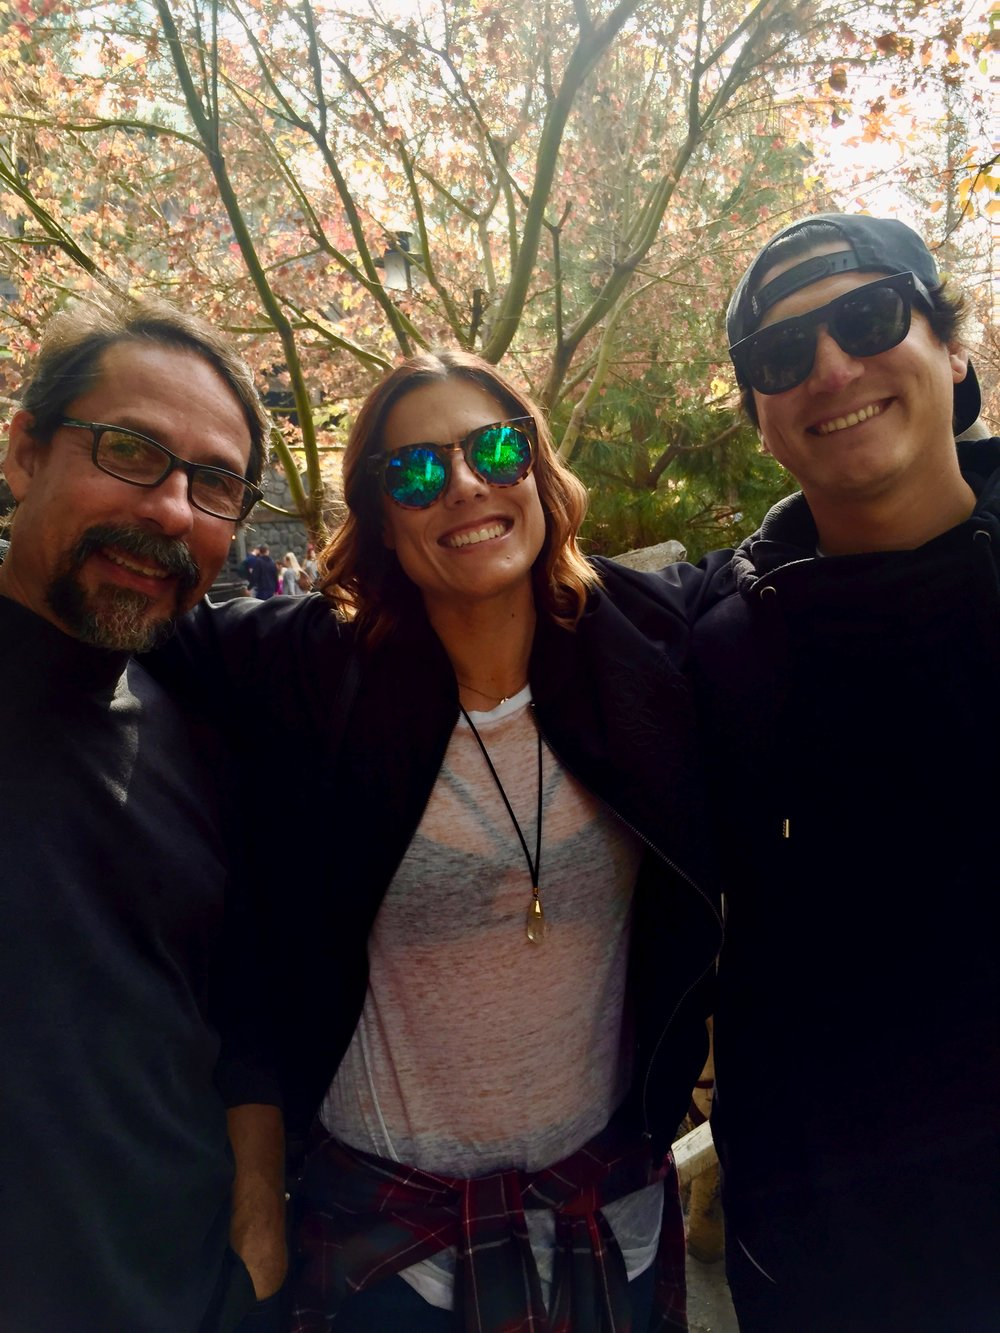 Mark, Jessica Rose and Jaime Preciado